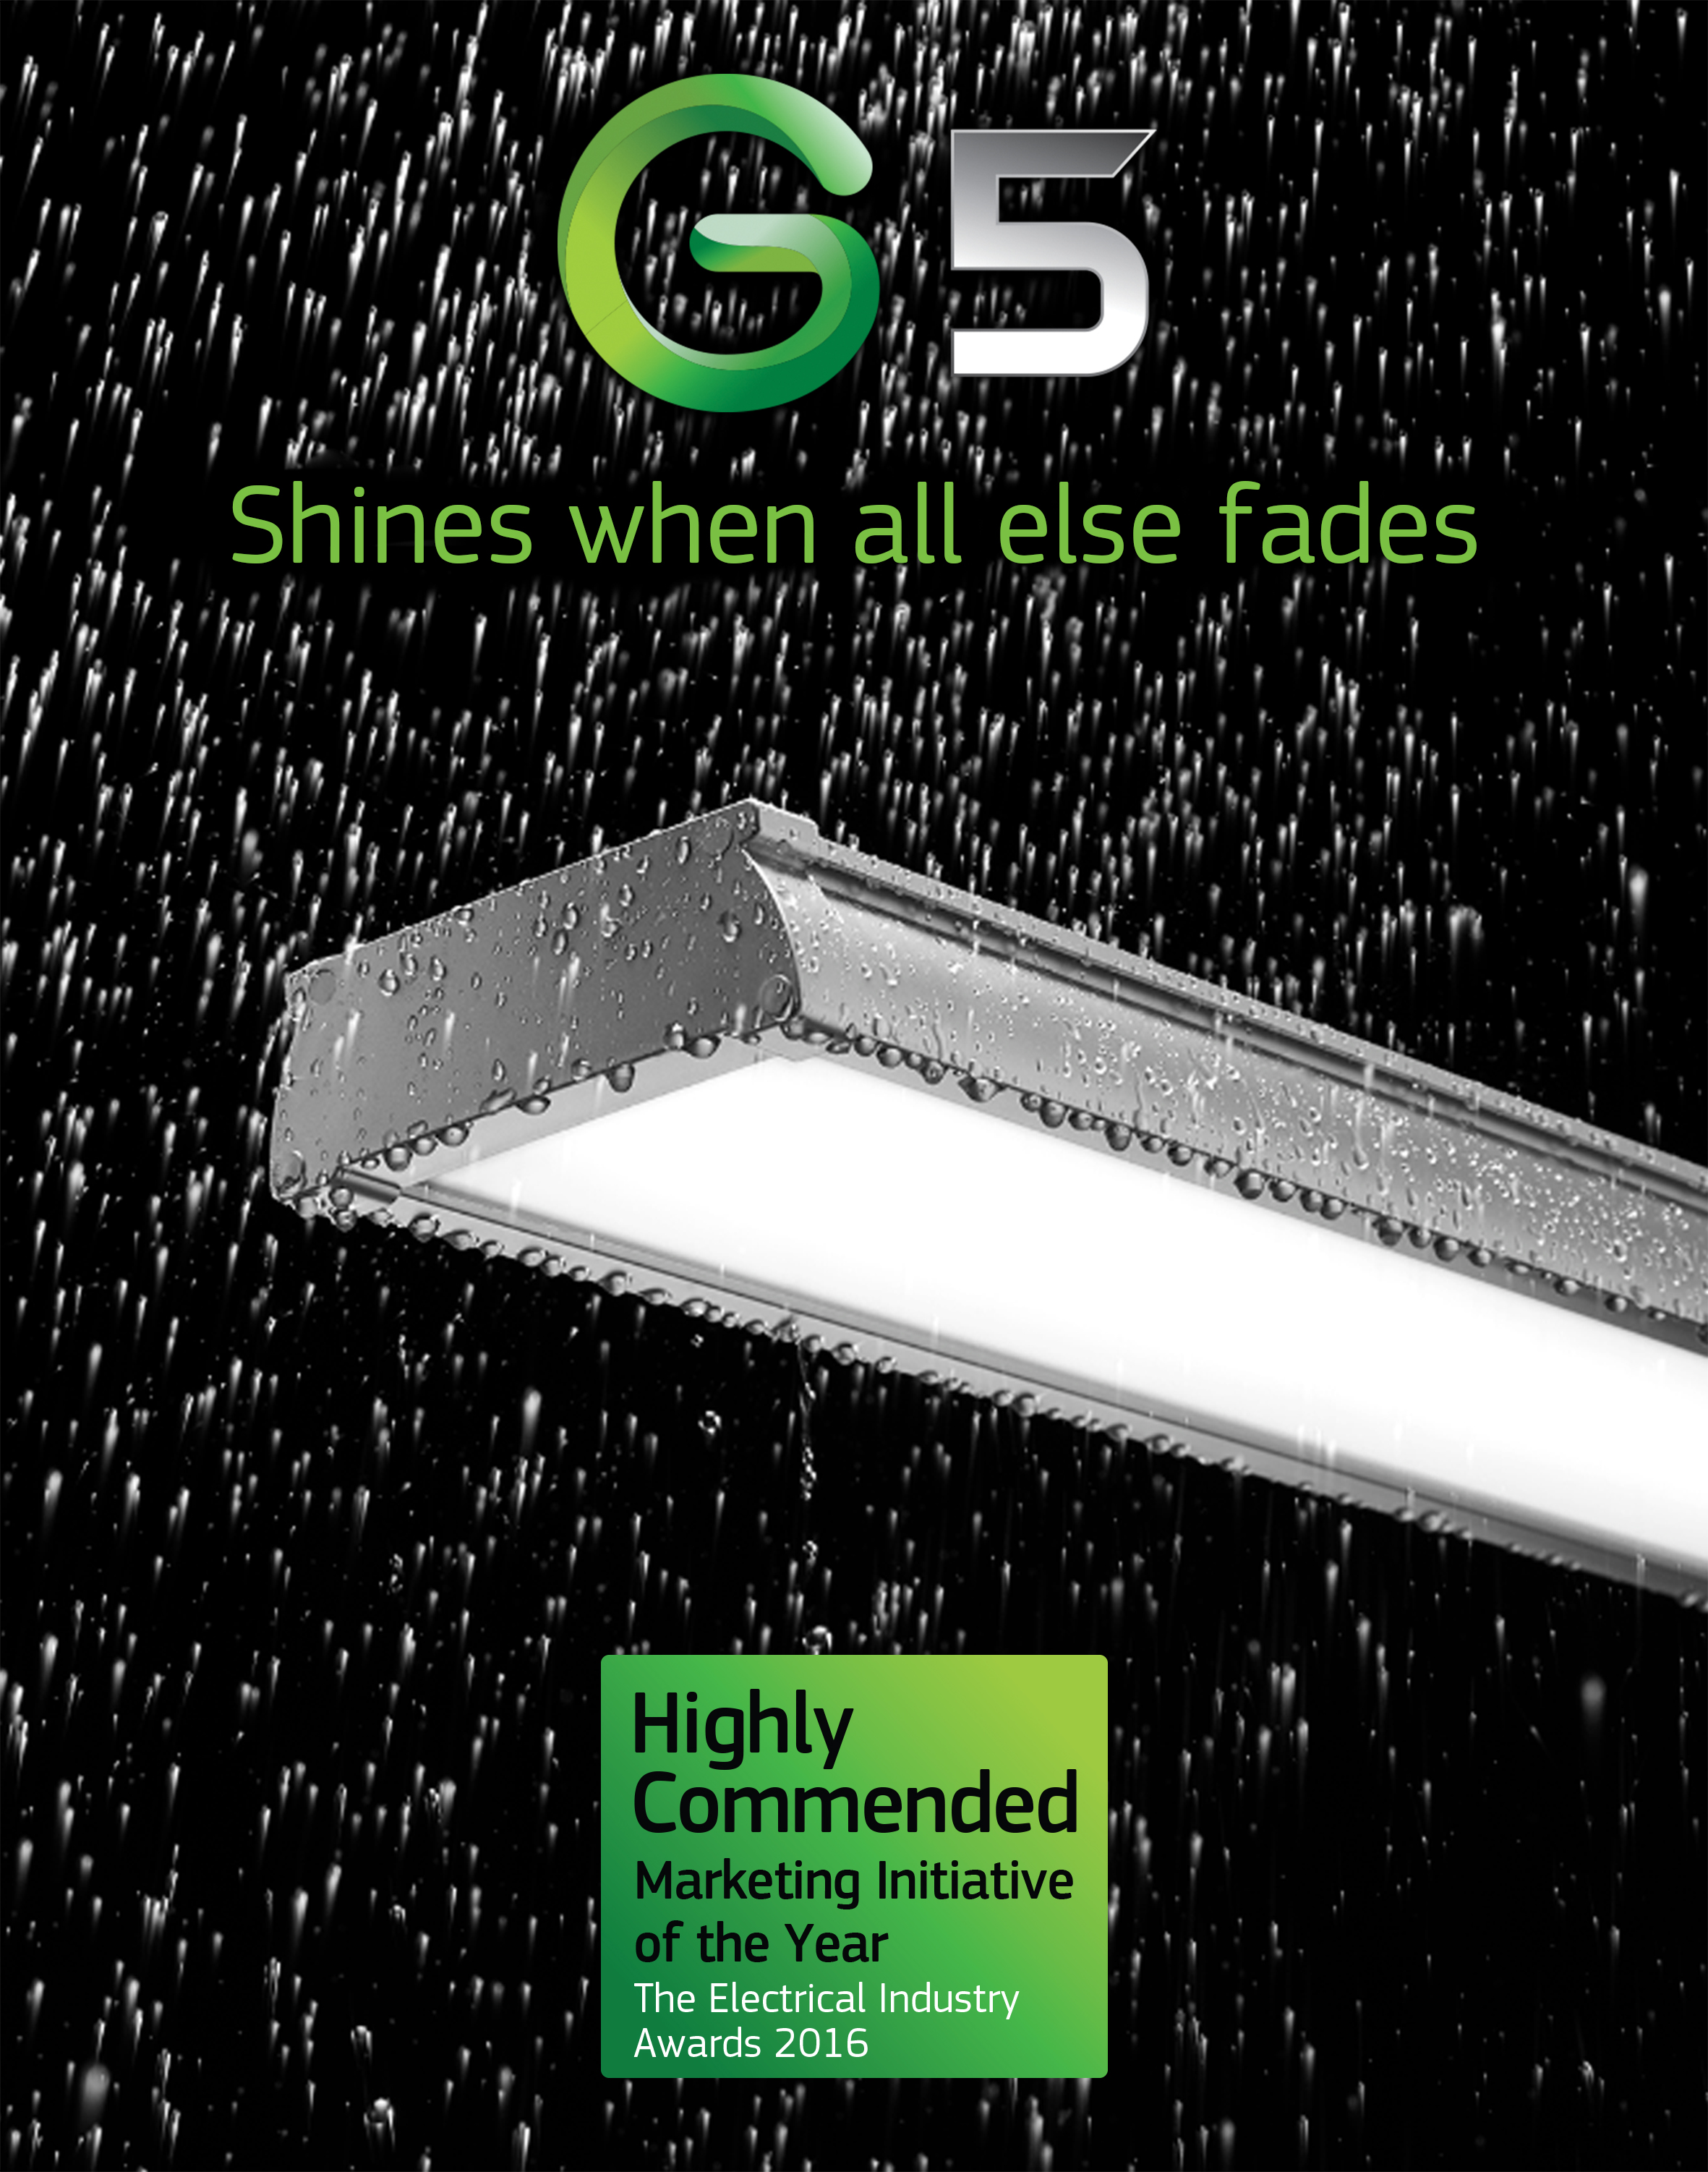 goodlight-g5-led-batten-luminaire-up-for-highly-commended-large